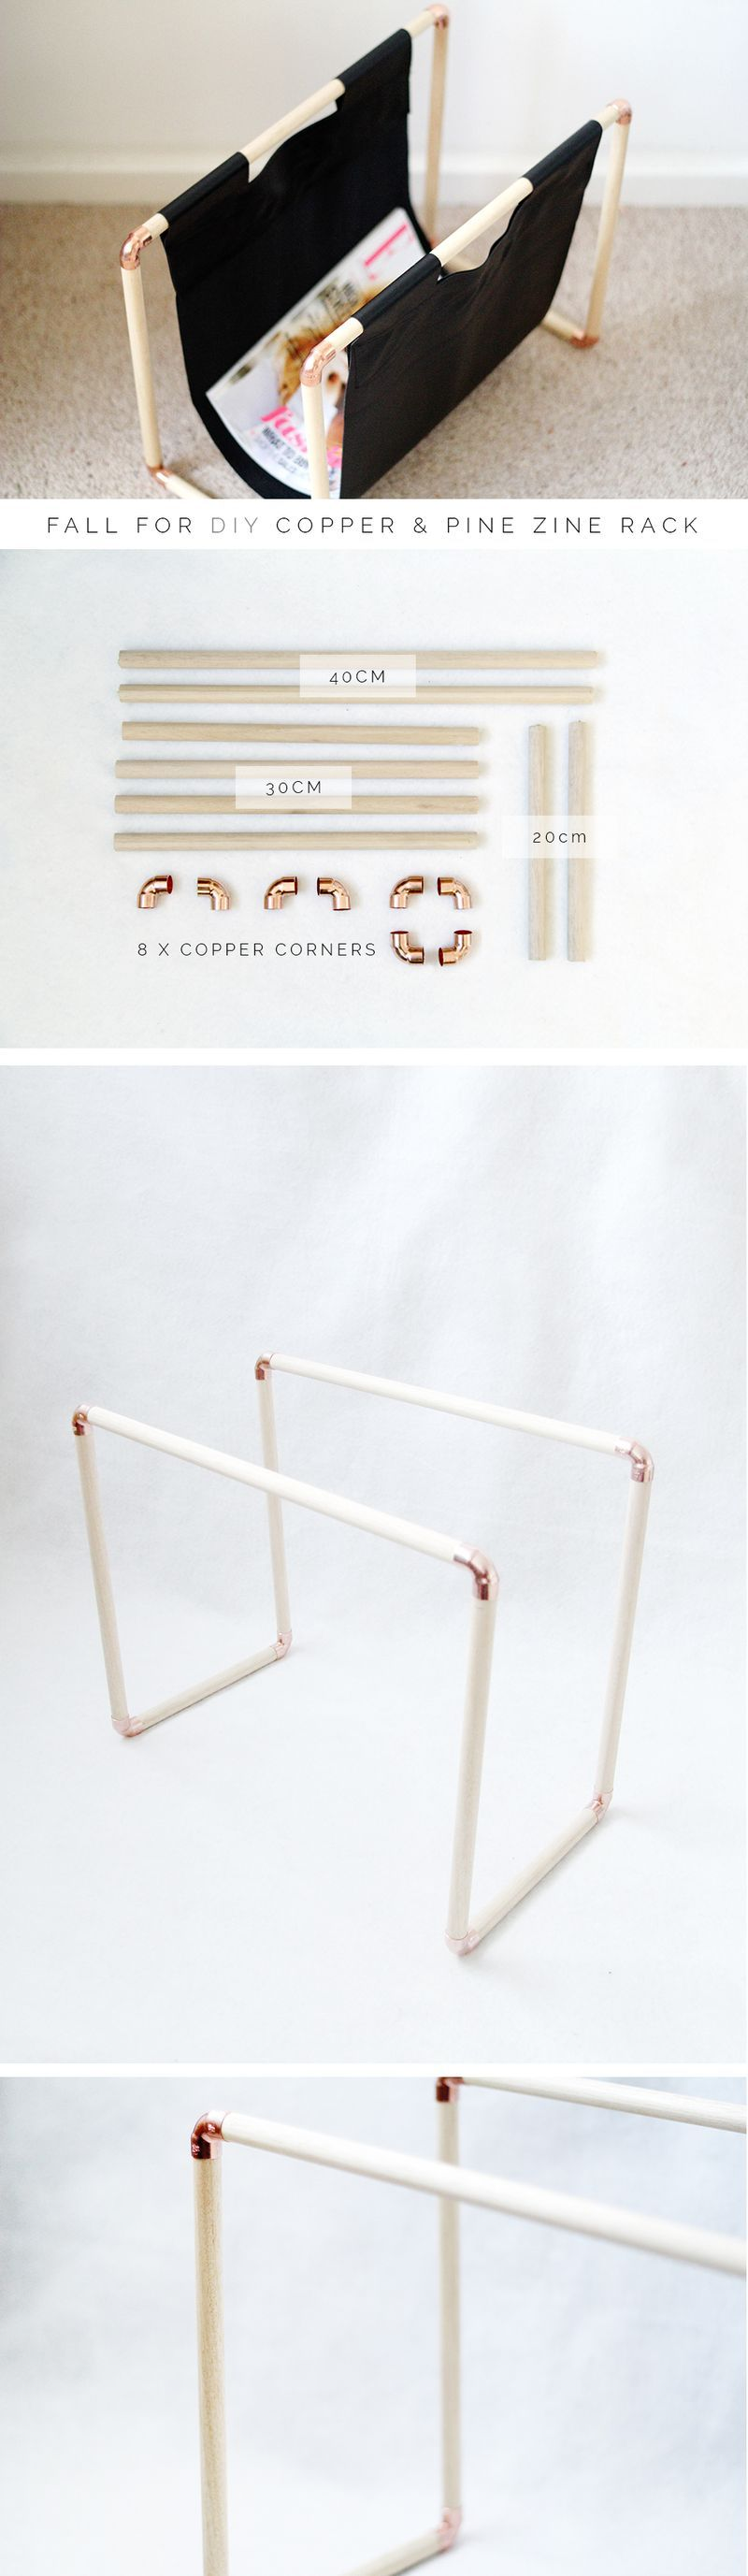 Журнал Copper Pipe Fall For DIY